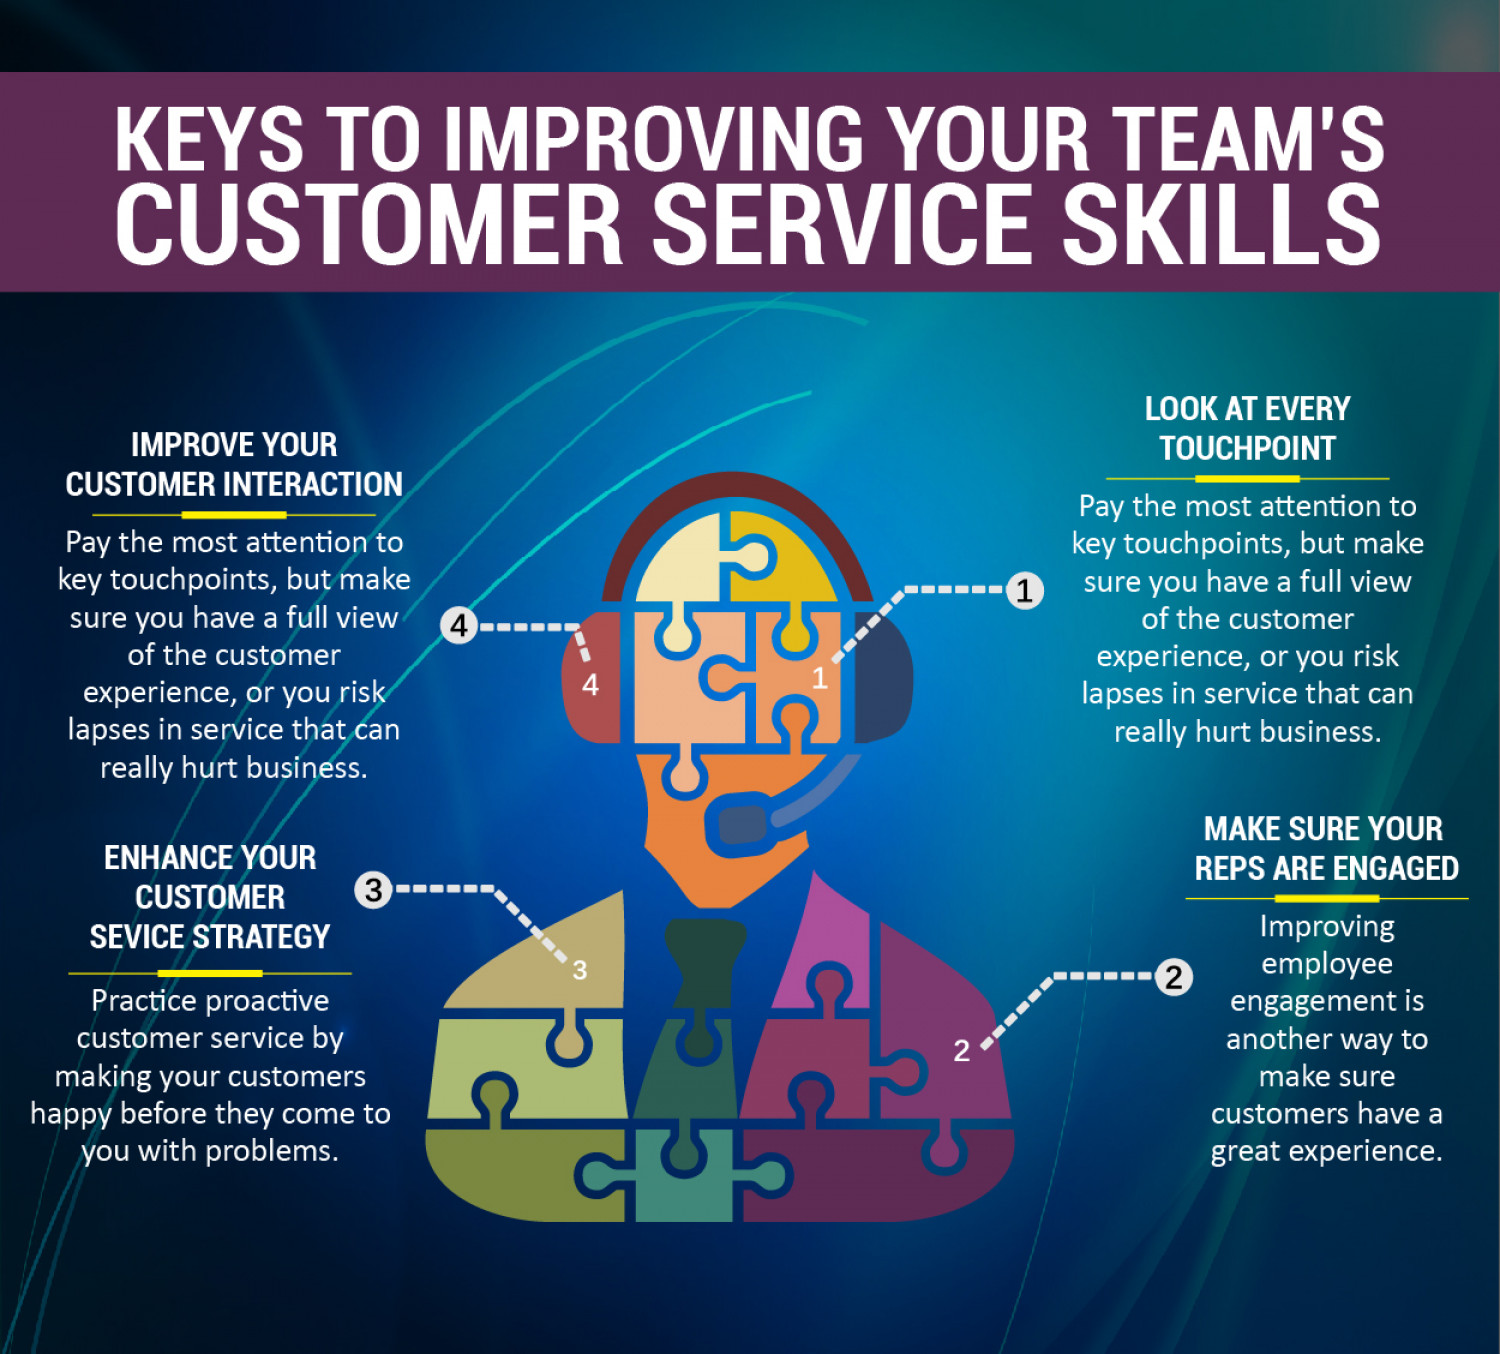 Tips to Improve Your Customer Service Skills | Visual.ly